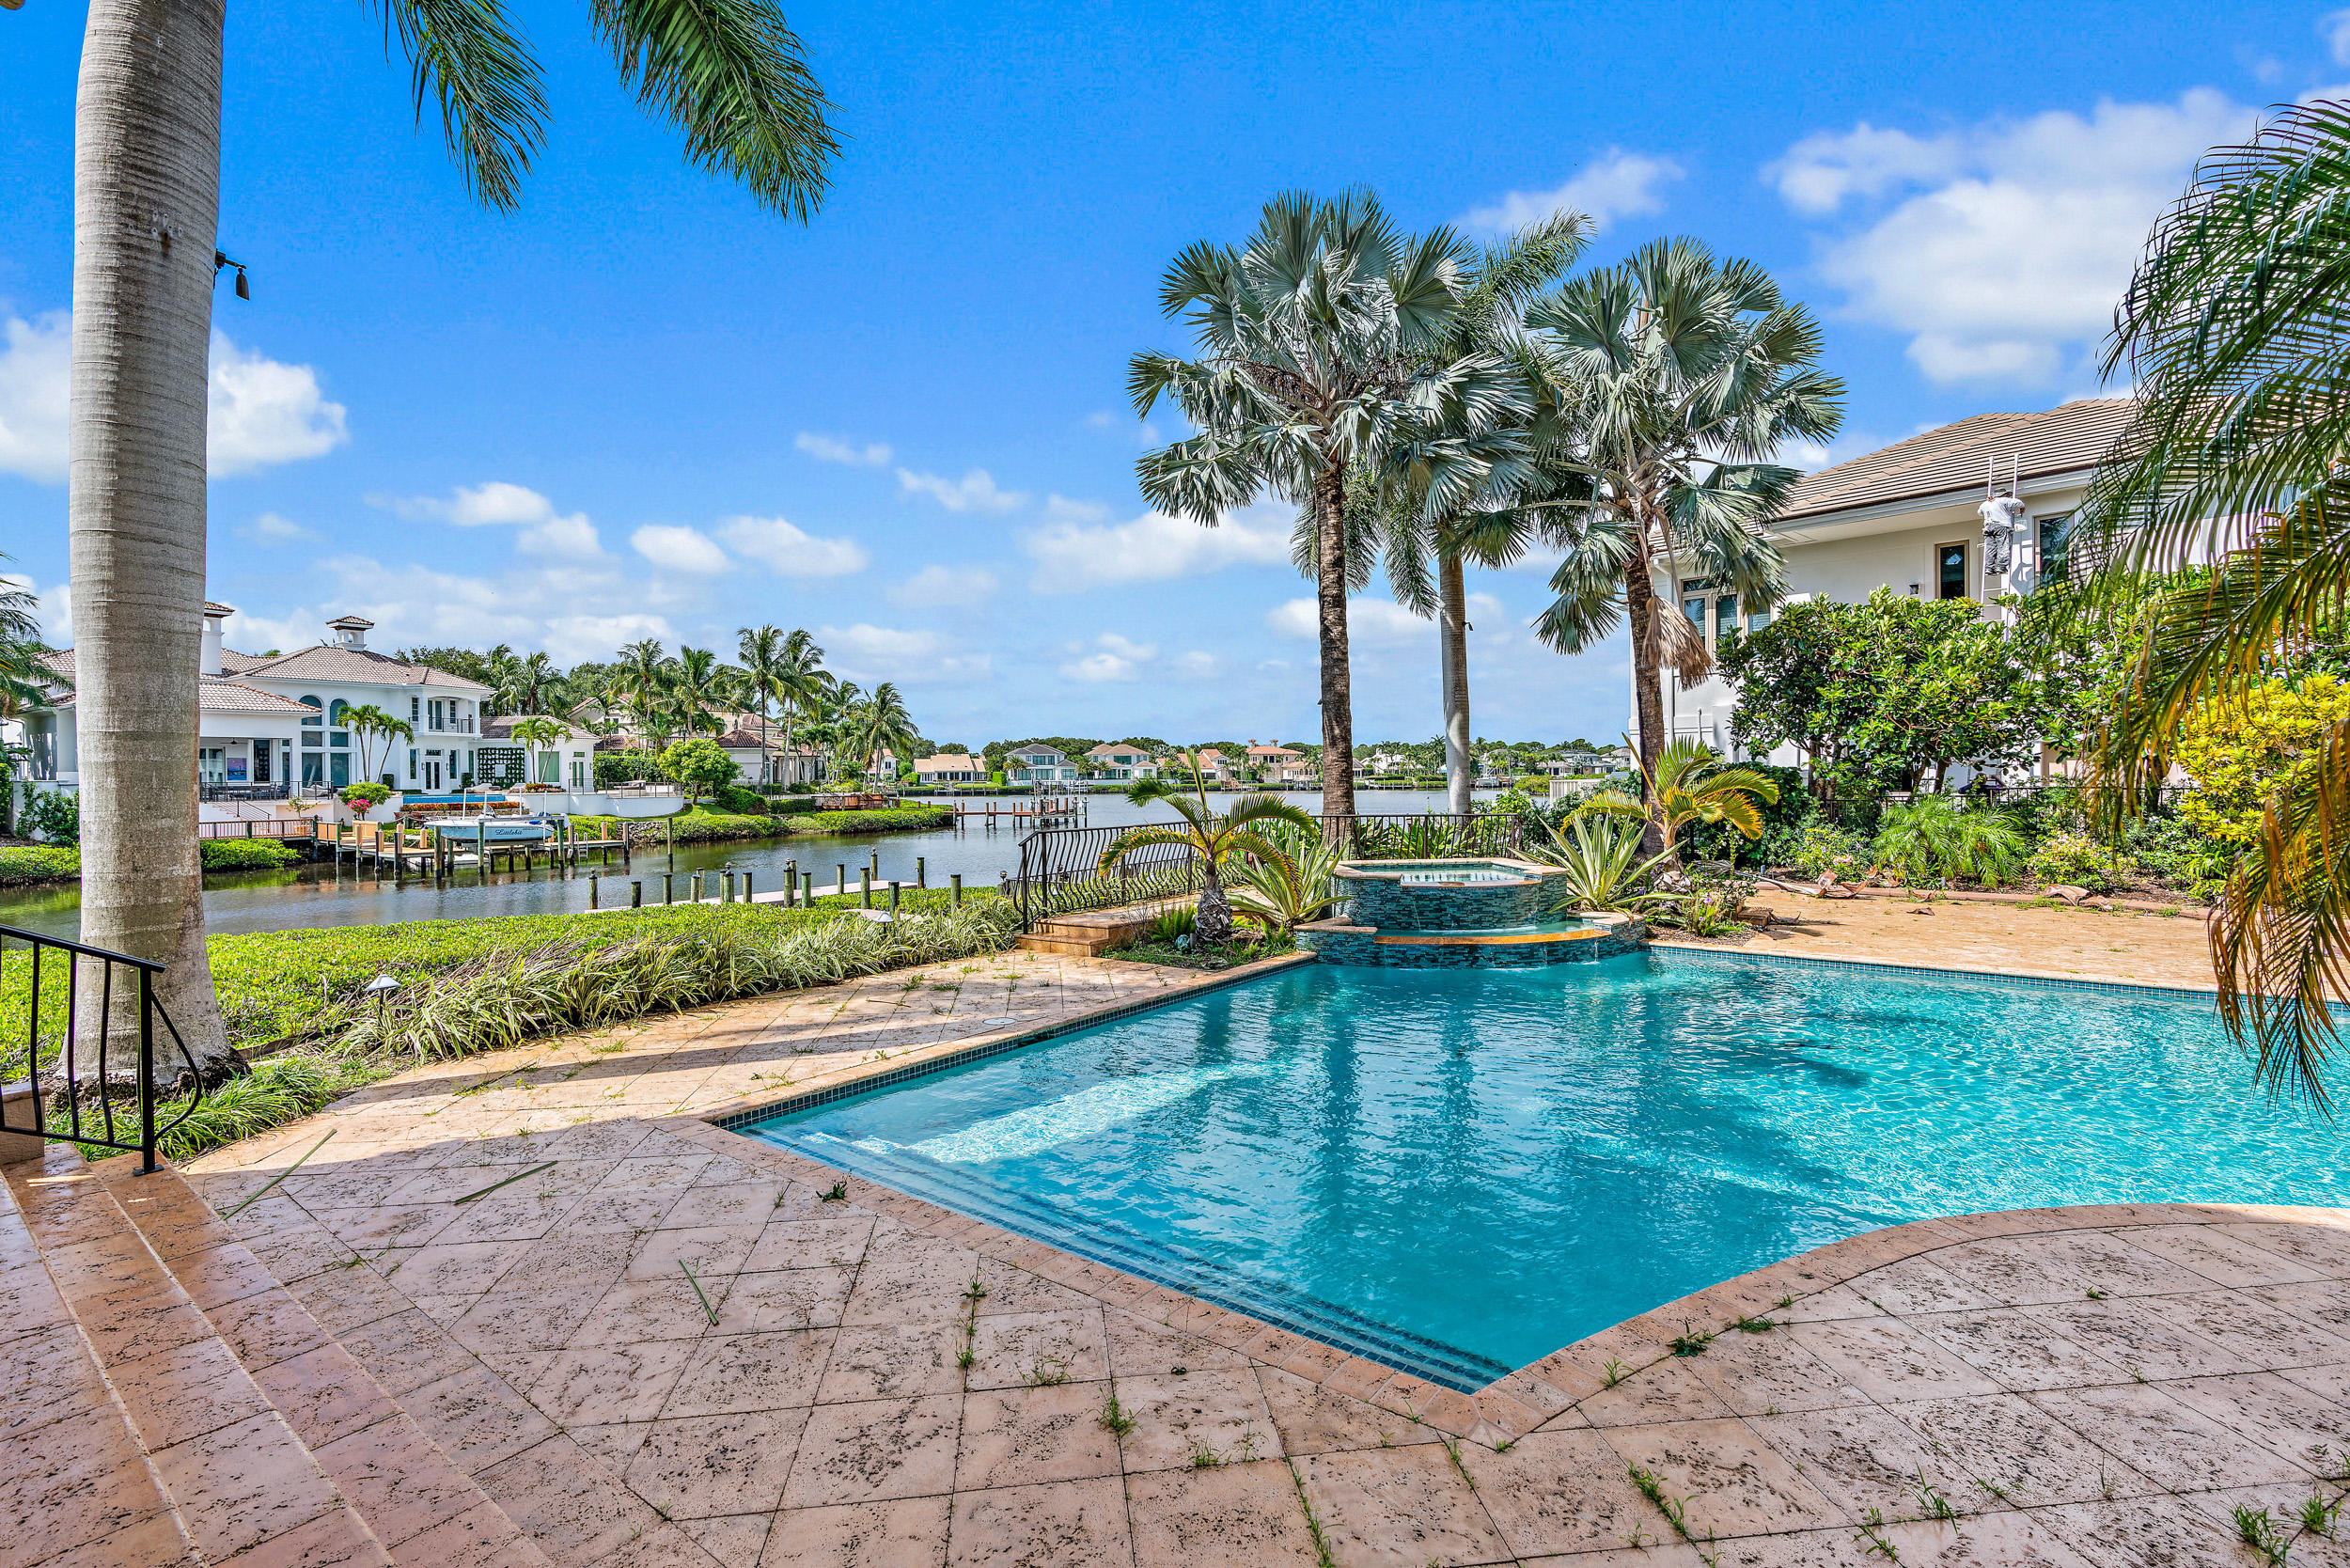 Waterfront Estate home with over 8,100 square feet of luxury living.  Located on a tree lined, cul-de-sac street in the highly desirable Admirals Cove.  Close to all the amenities and perfectly situated on over 100 feet of waterways with Intracoastal access.   The home features 5 bedrooms, a theater room, impact windows, fresh paint, fine craftmanship and materials and so much more!